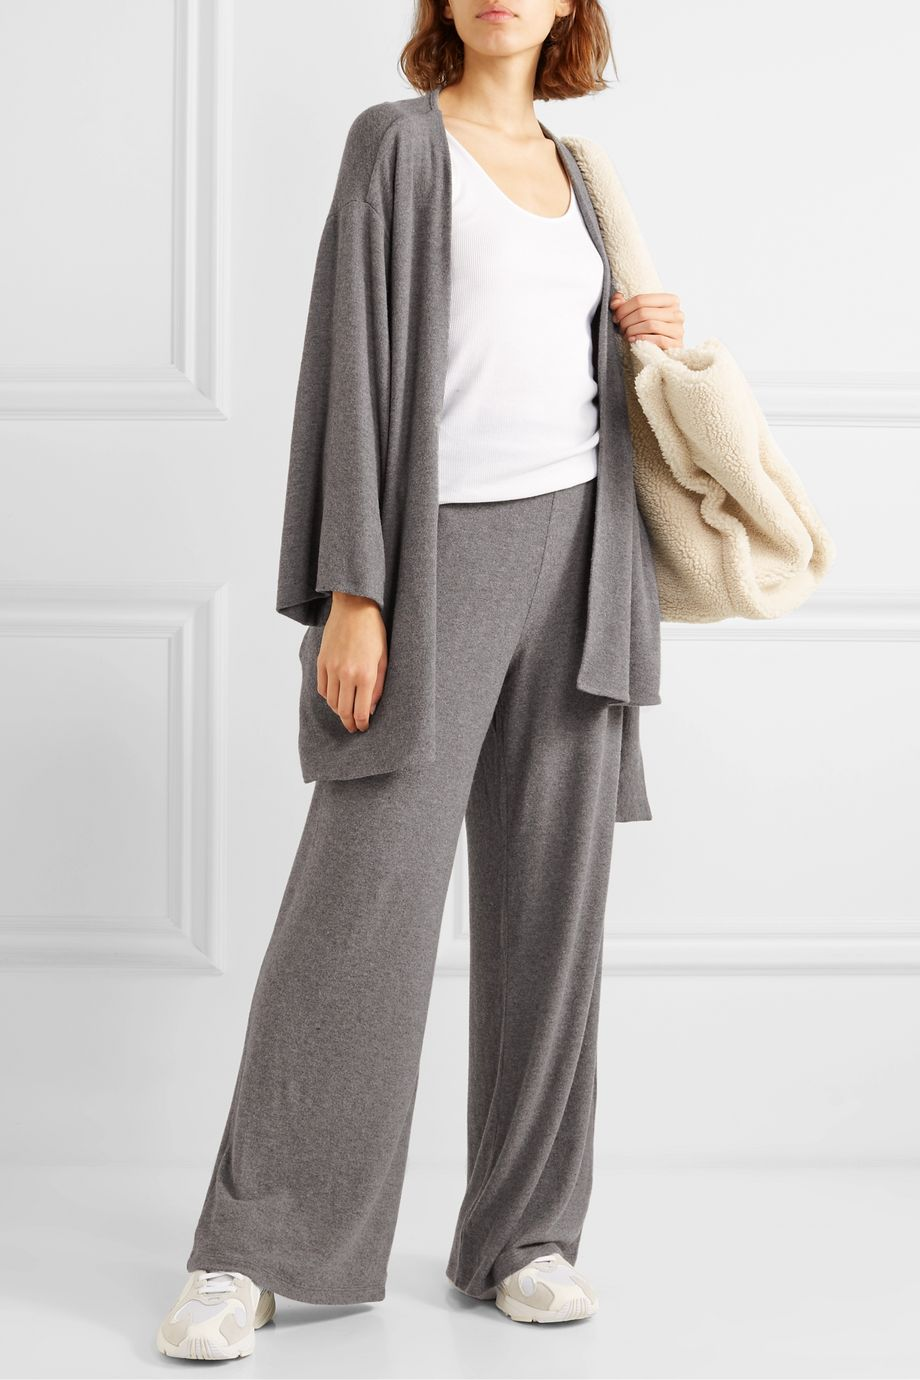 LESET Lori belted brushed stretch-knit cardigan